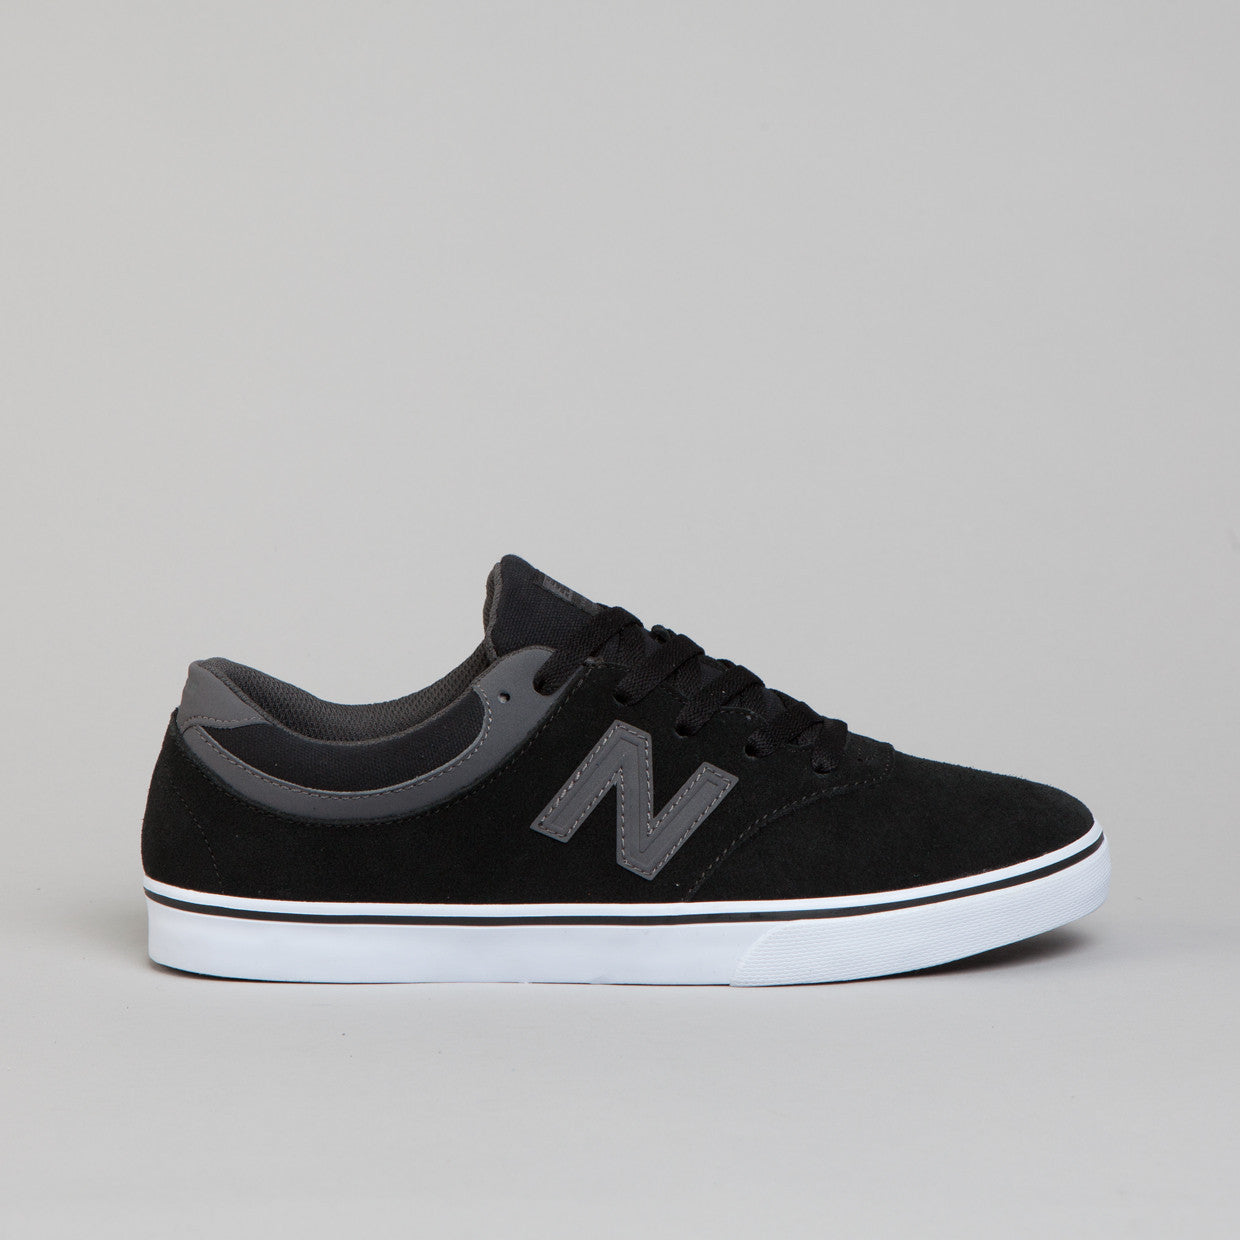 New Balance Numeric Quincy 254 Black / Magnet Grey